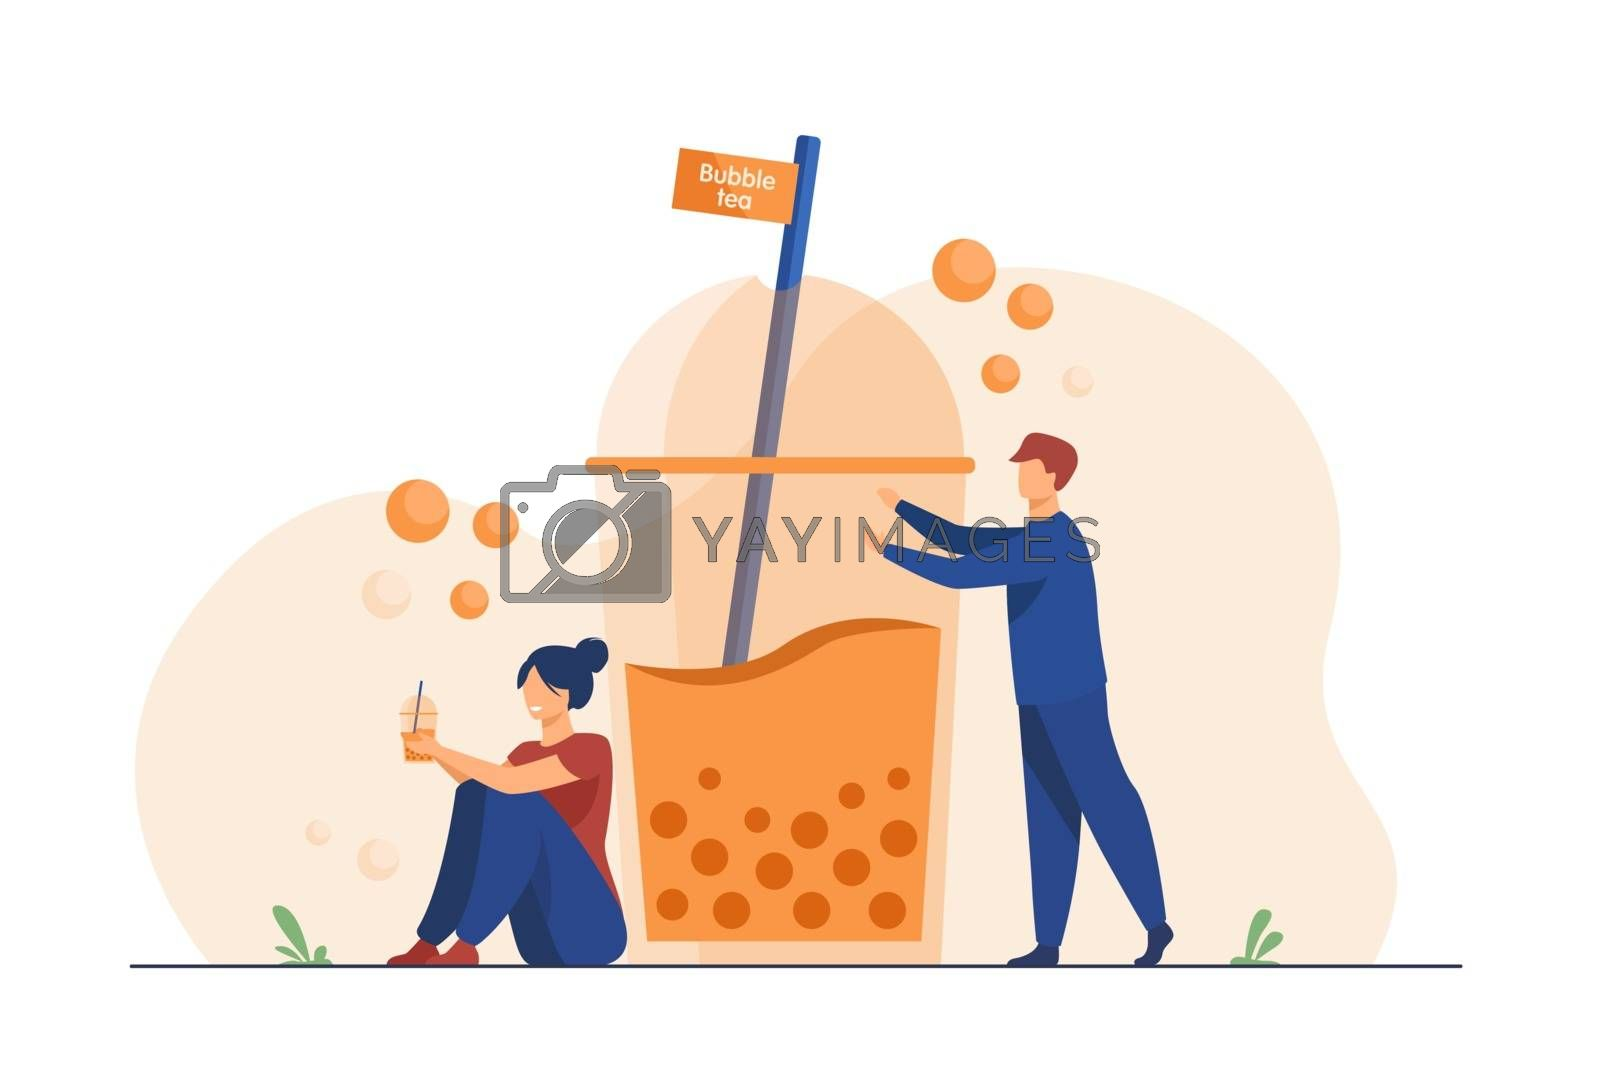 Man and woman drinking takeaway bubble tea. People with disposal transparent glass of cold milk boba beverage. Vector illustration for summer, refreshment, coffee shop concept